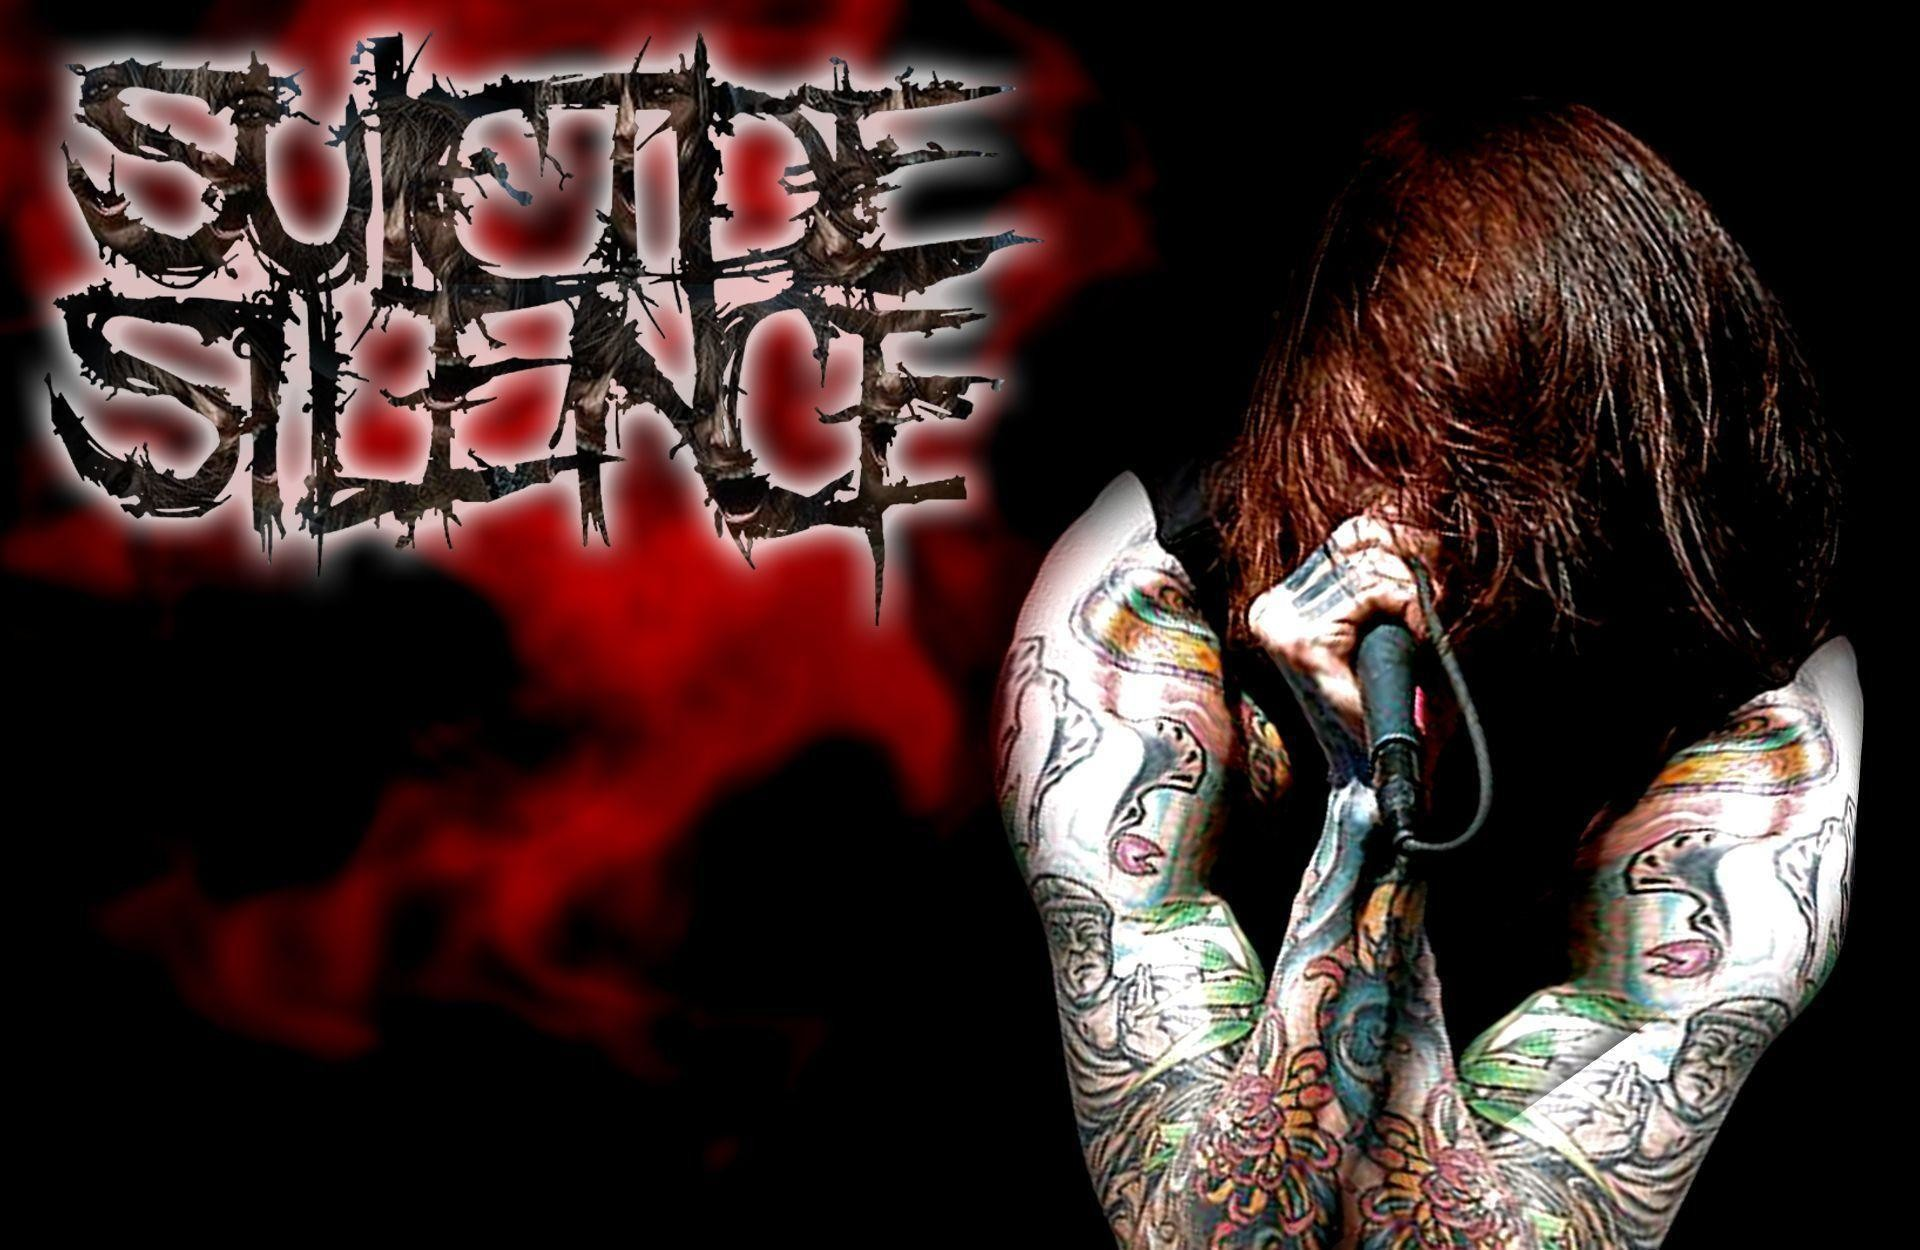 1920x1250 Images For > Suicide Silence Rip Mitch Lucker Wallpaper